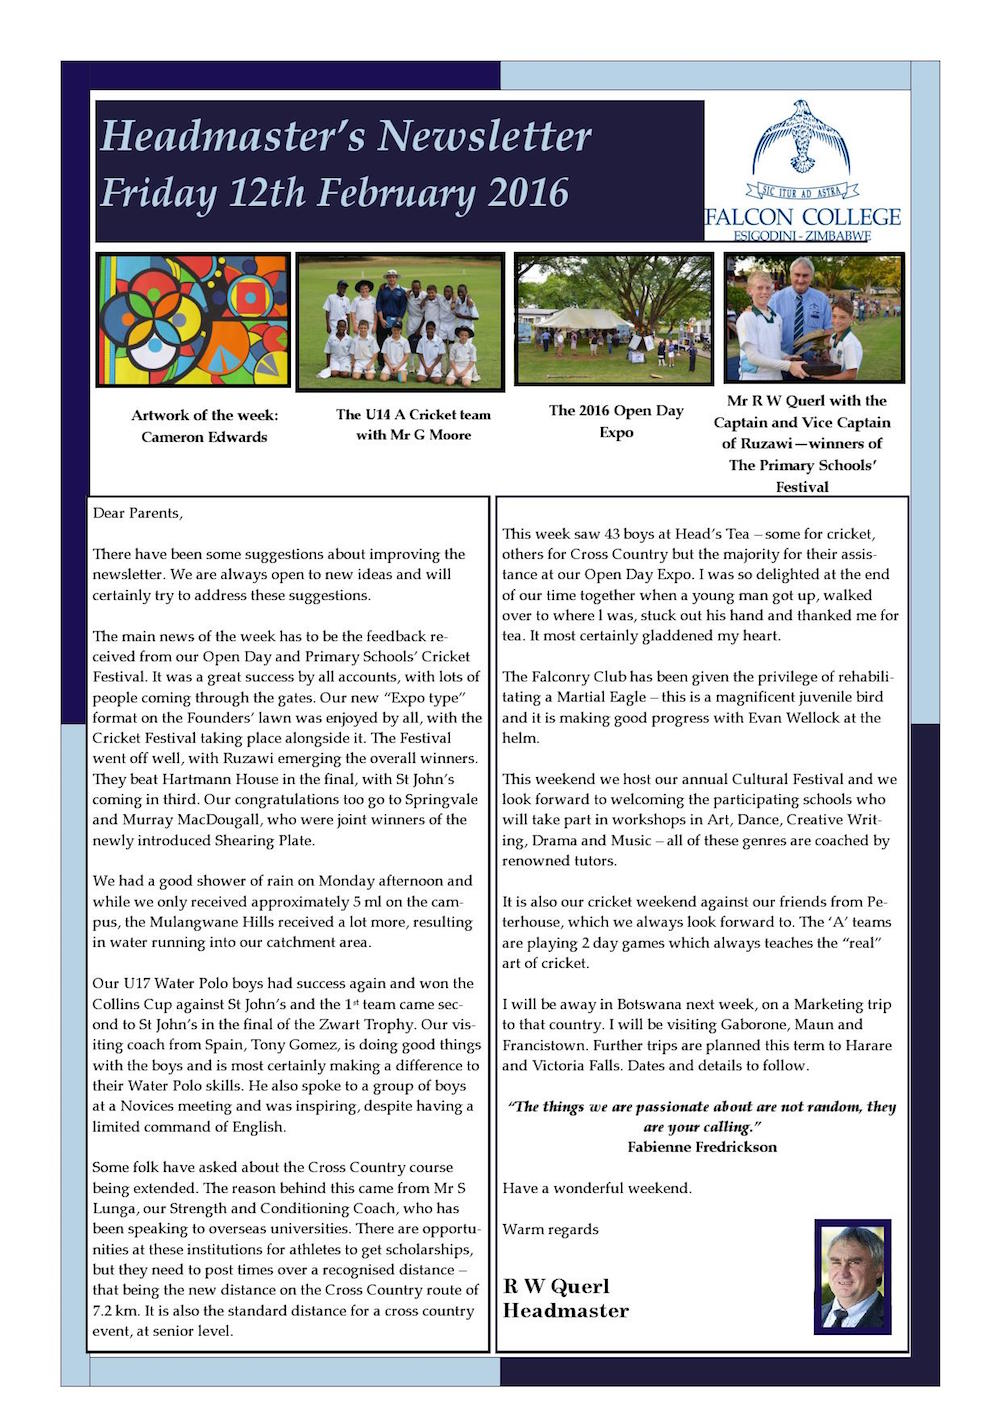 Headmaster's Newsletter Friday 12th February 2016 edited_000001